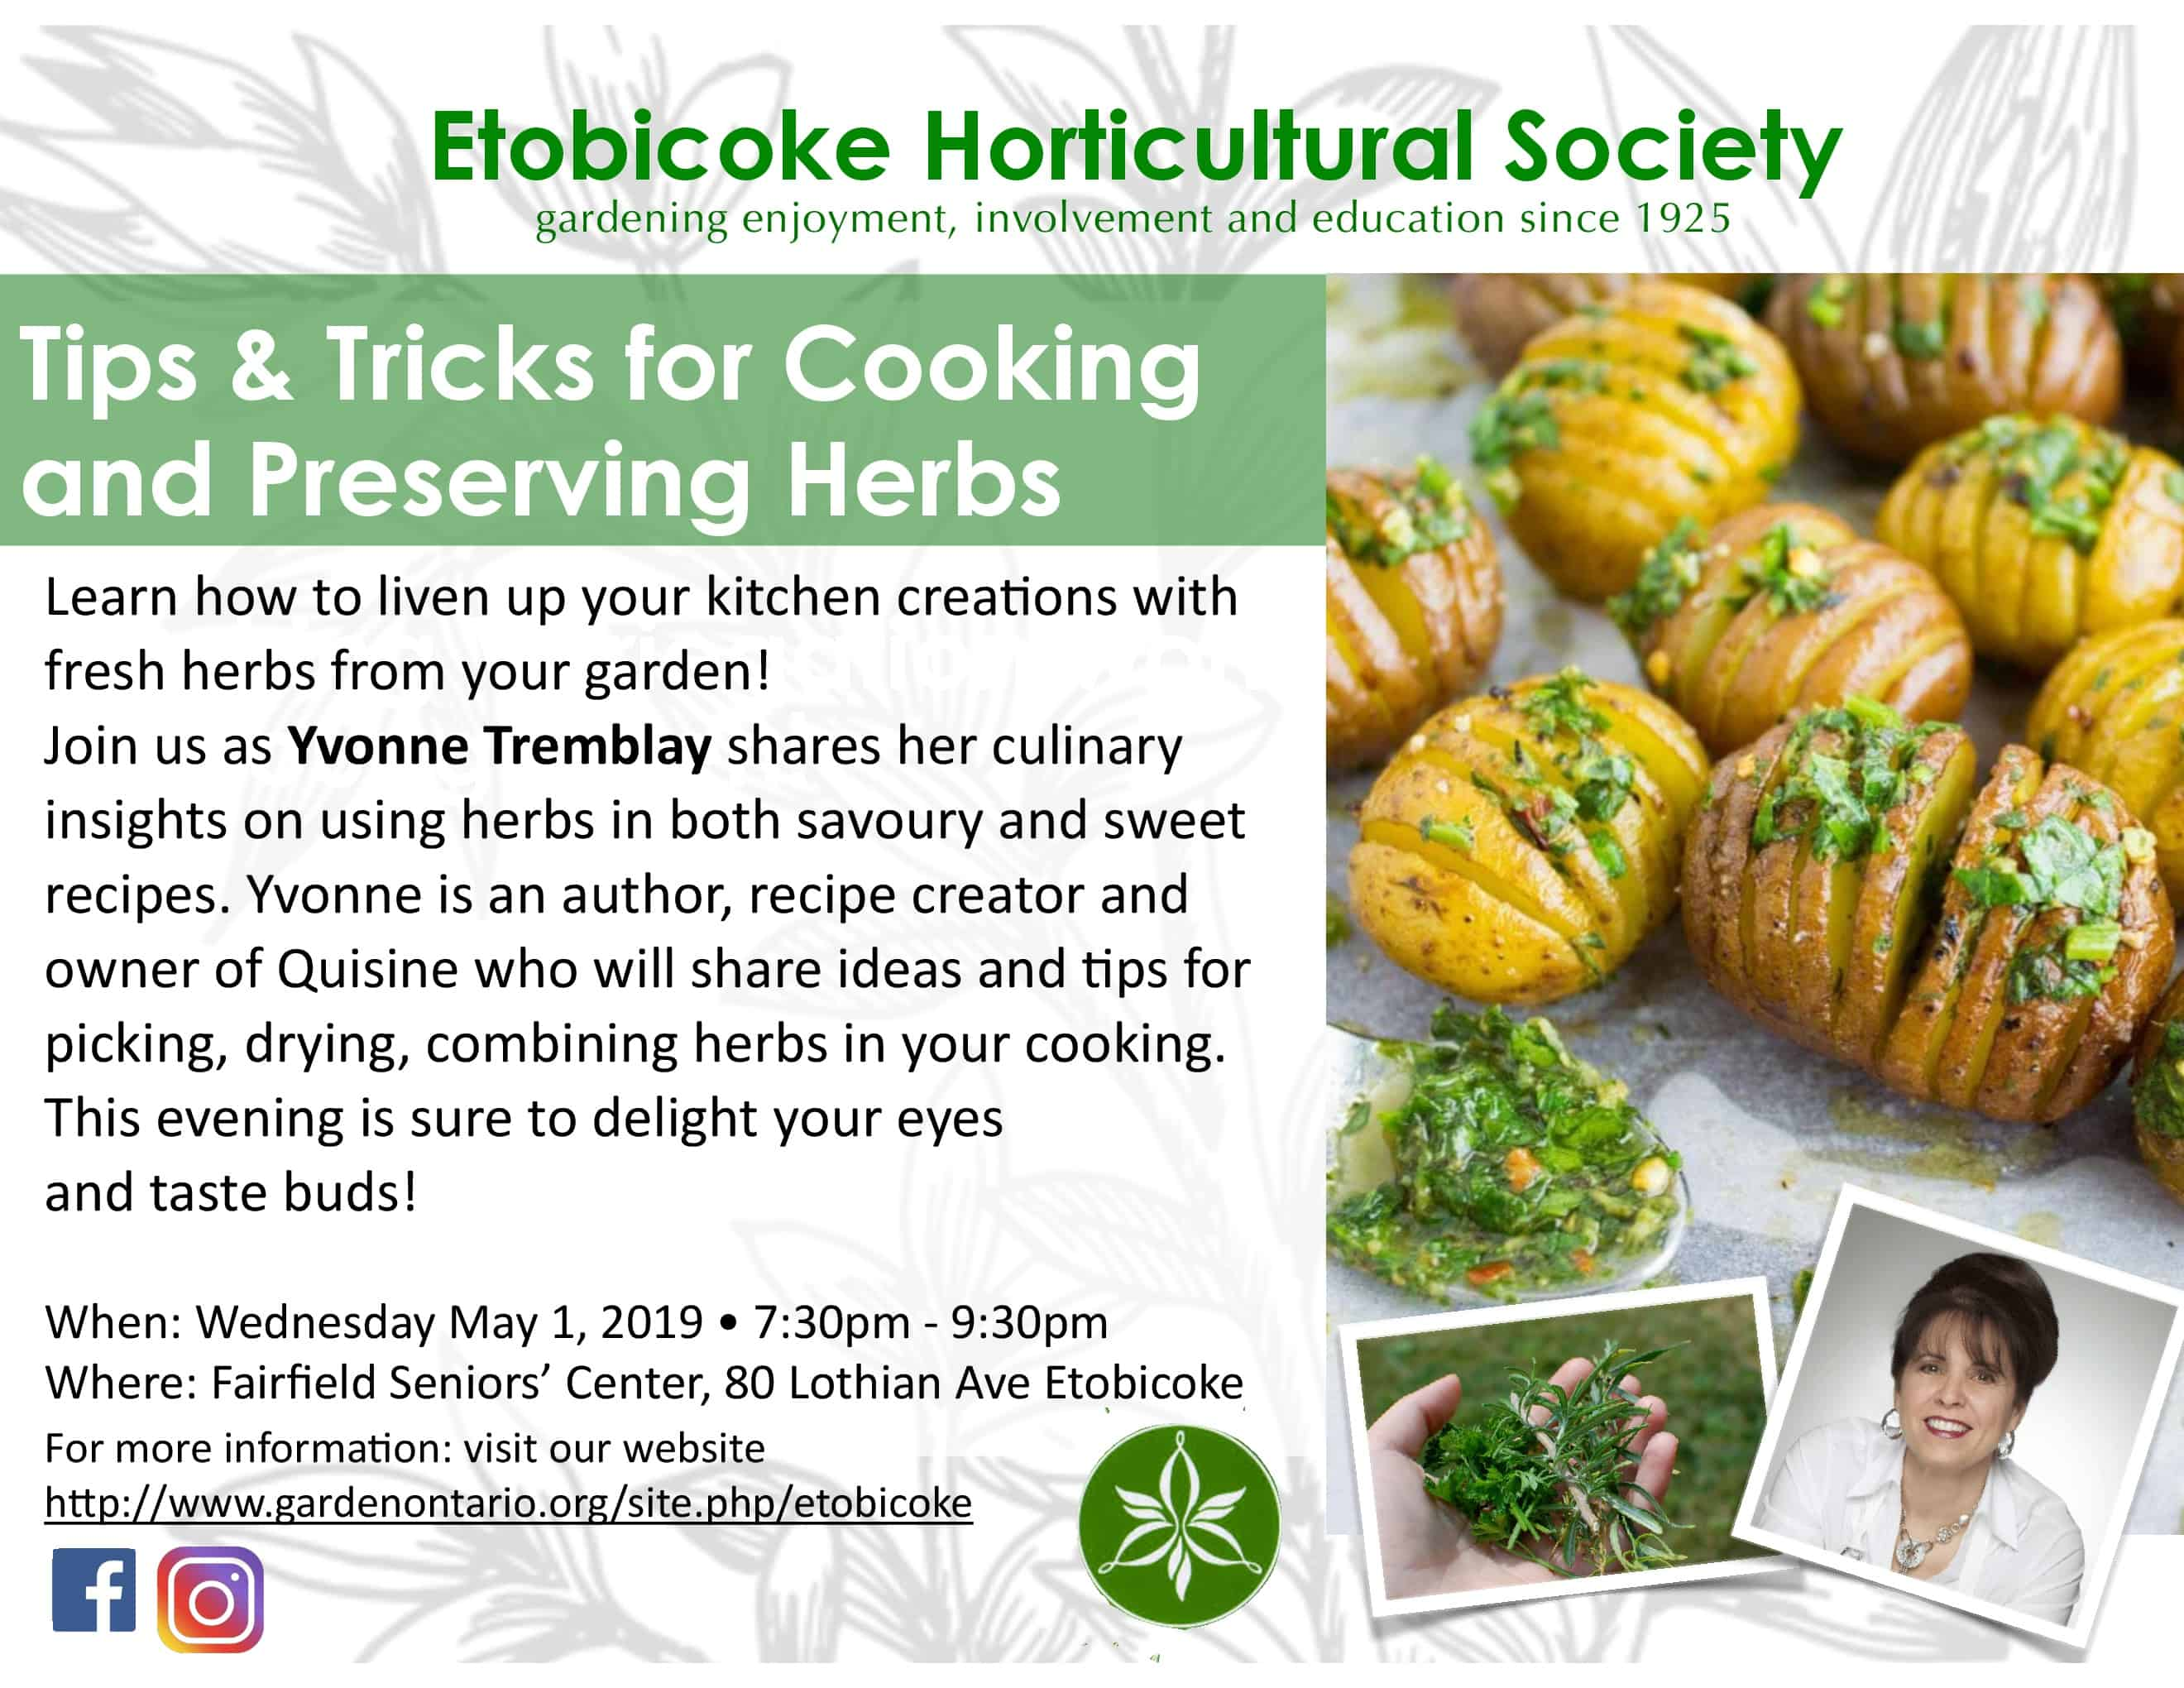 Tips & Tricks for Cooking and Preserving Herbs